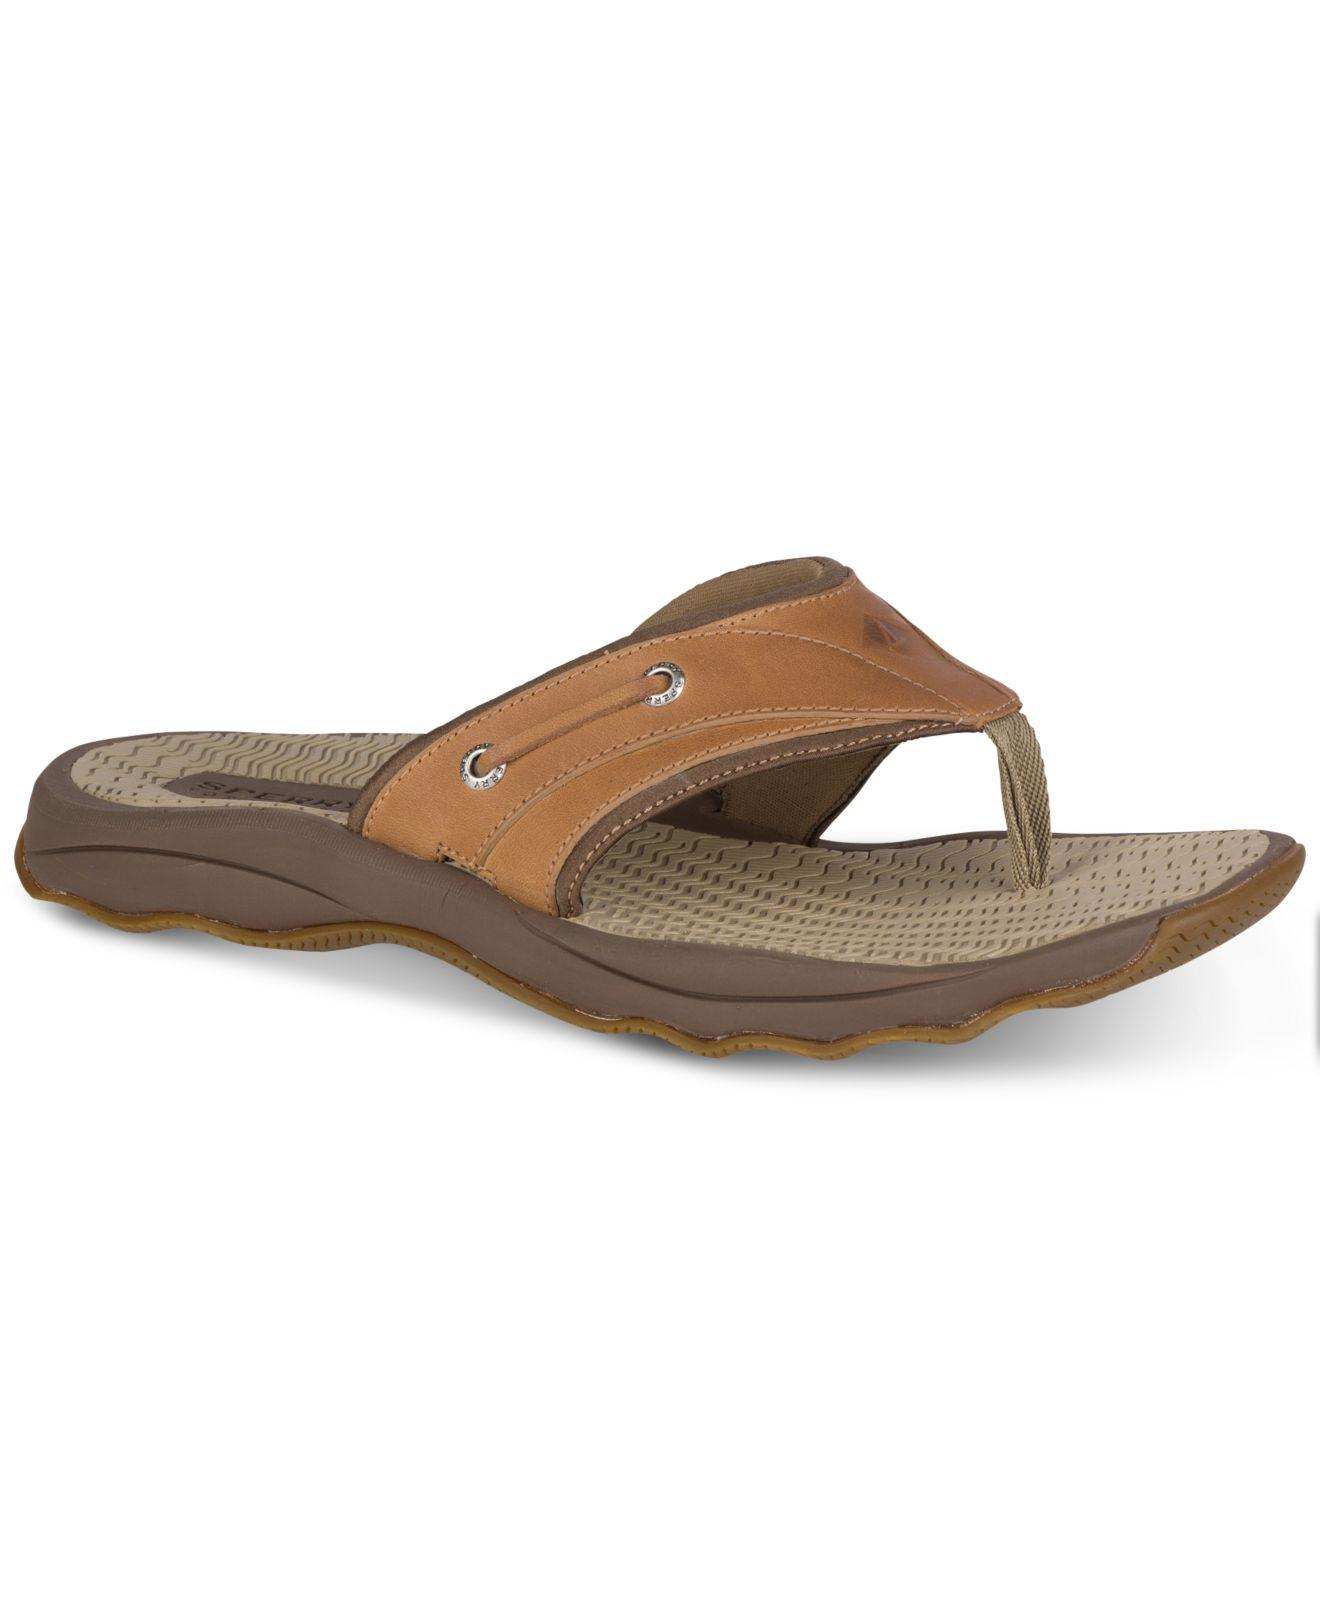 e0ea120606b16f Lyst - Sperry Top-Sider Outerbanks Thong Sandals in Brown